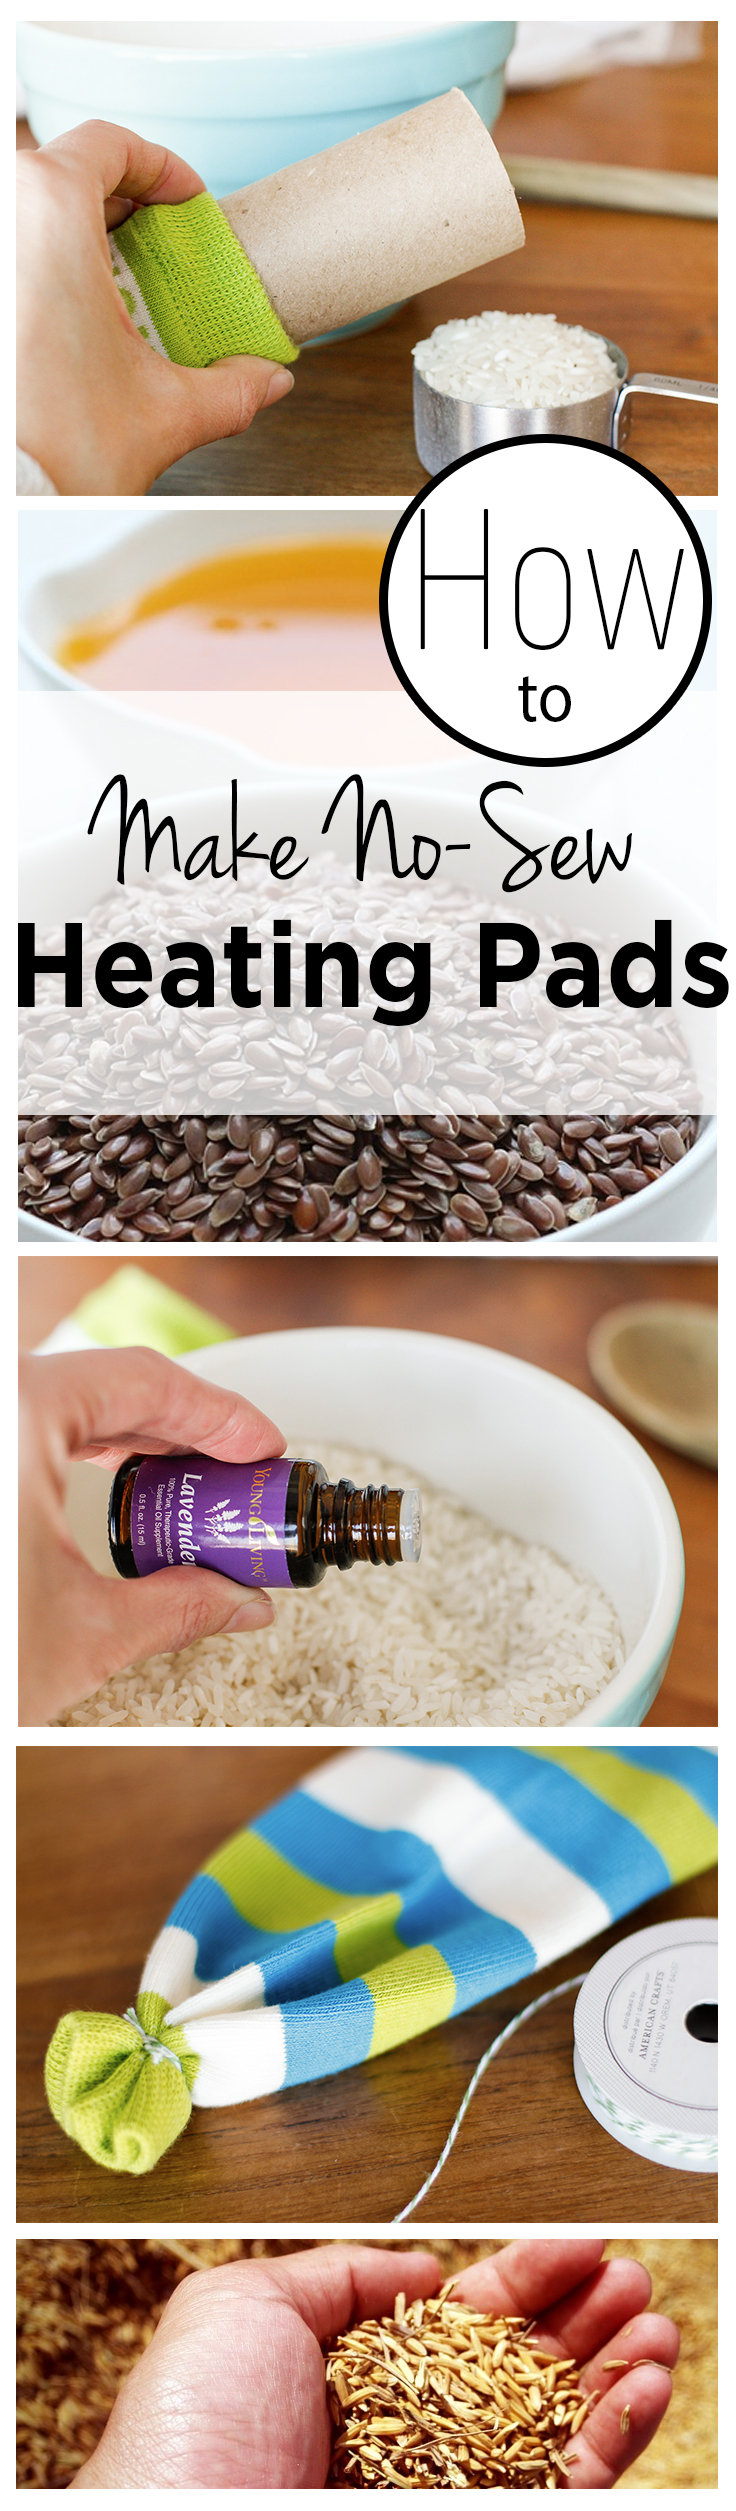 No Sew Heating Pads, Heating Pads, Heating Pad Ideas, No Sew Heating Packs, Popular, No Sew Crafts, No Sew Craft Projects